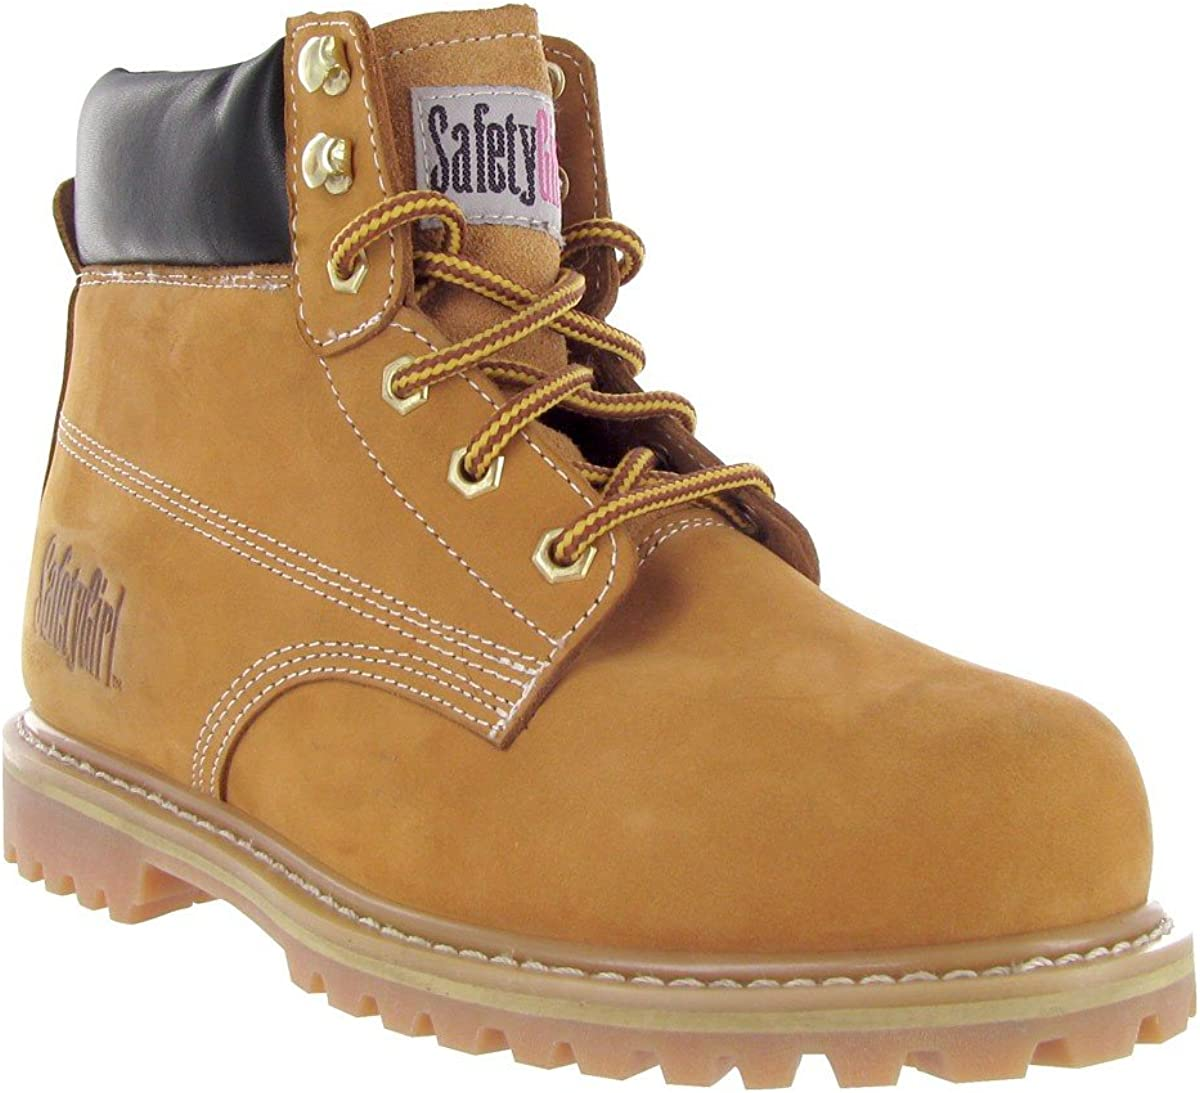 Safety Girl II Womens Work Boots